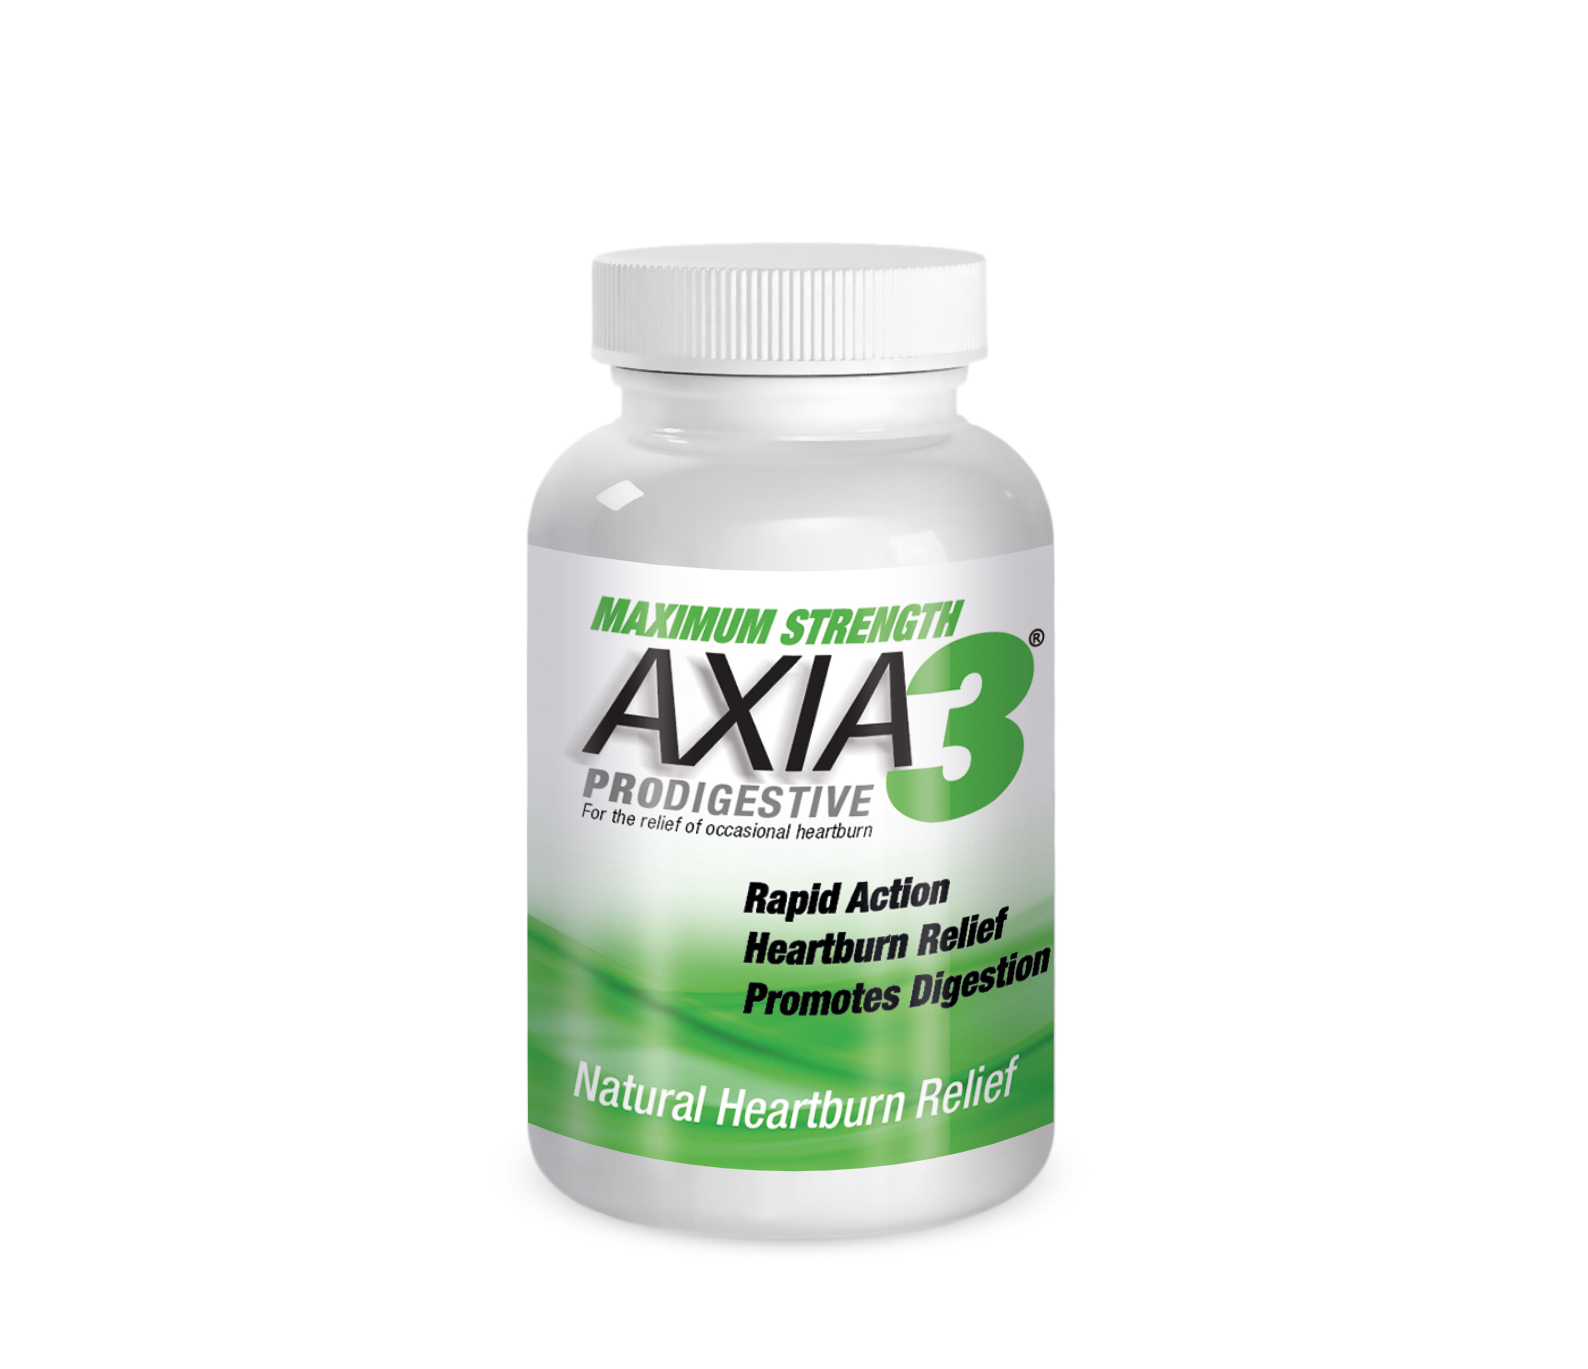 Axia Essentials Maximum Strength Axia3 ProDigestive Heartburn Relief Natural Mint Candy